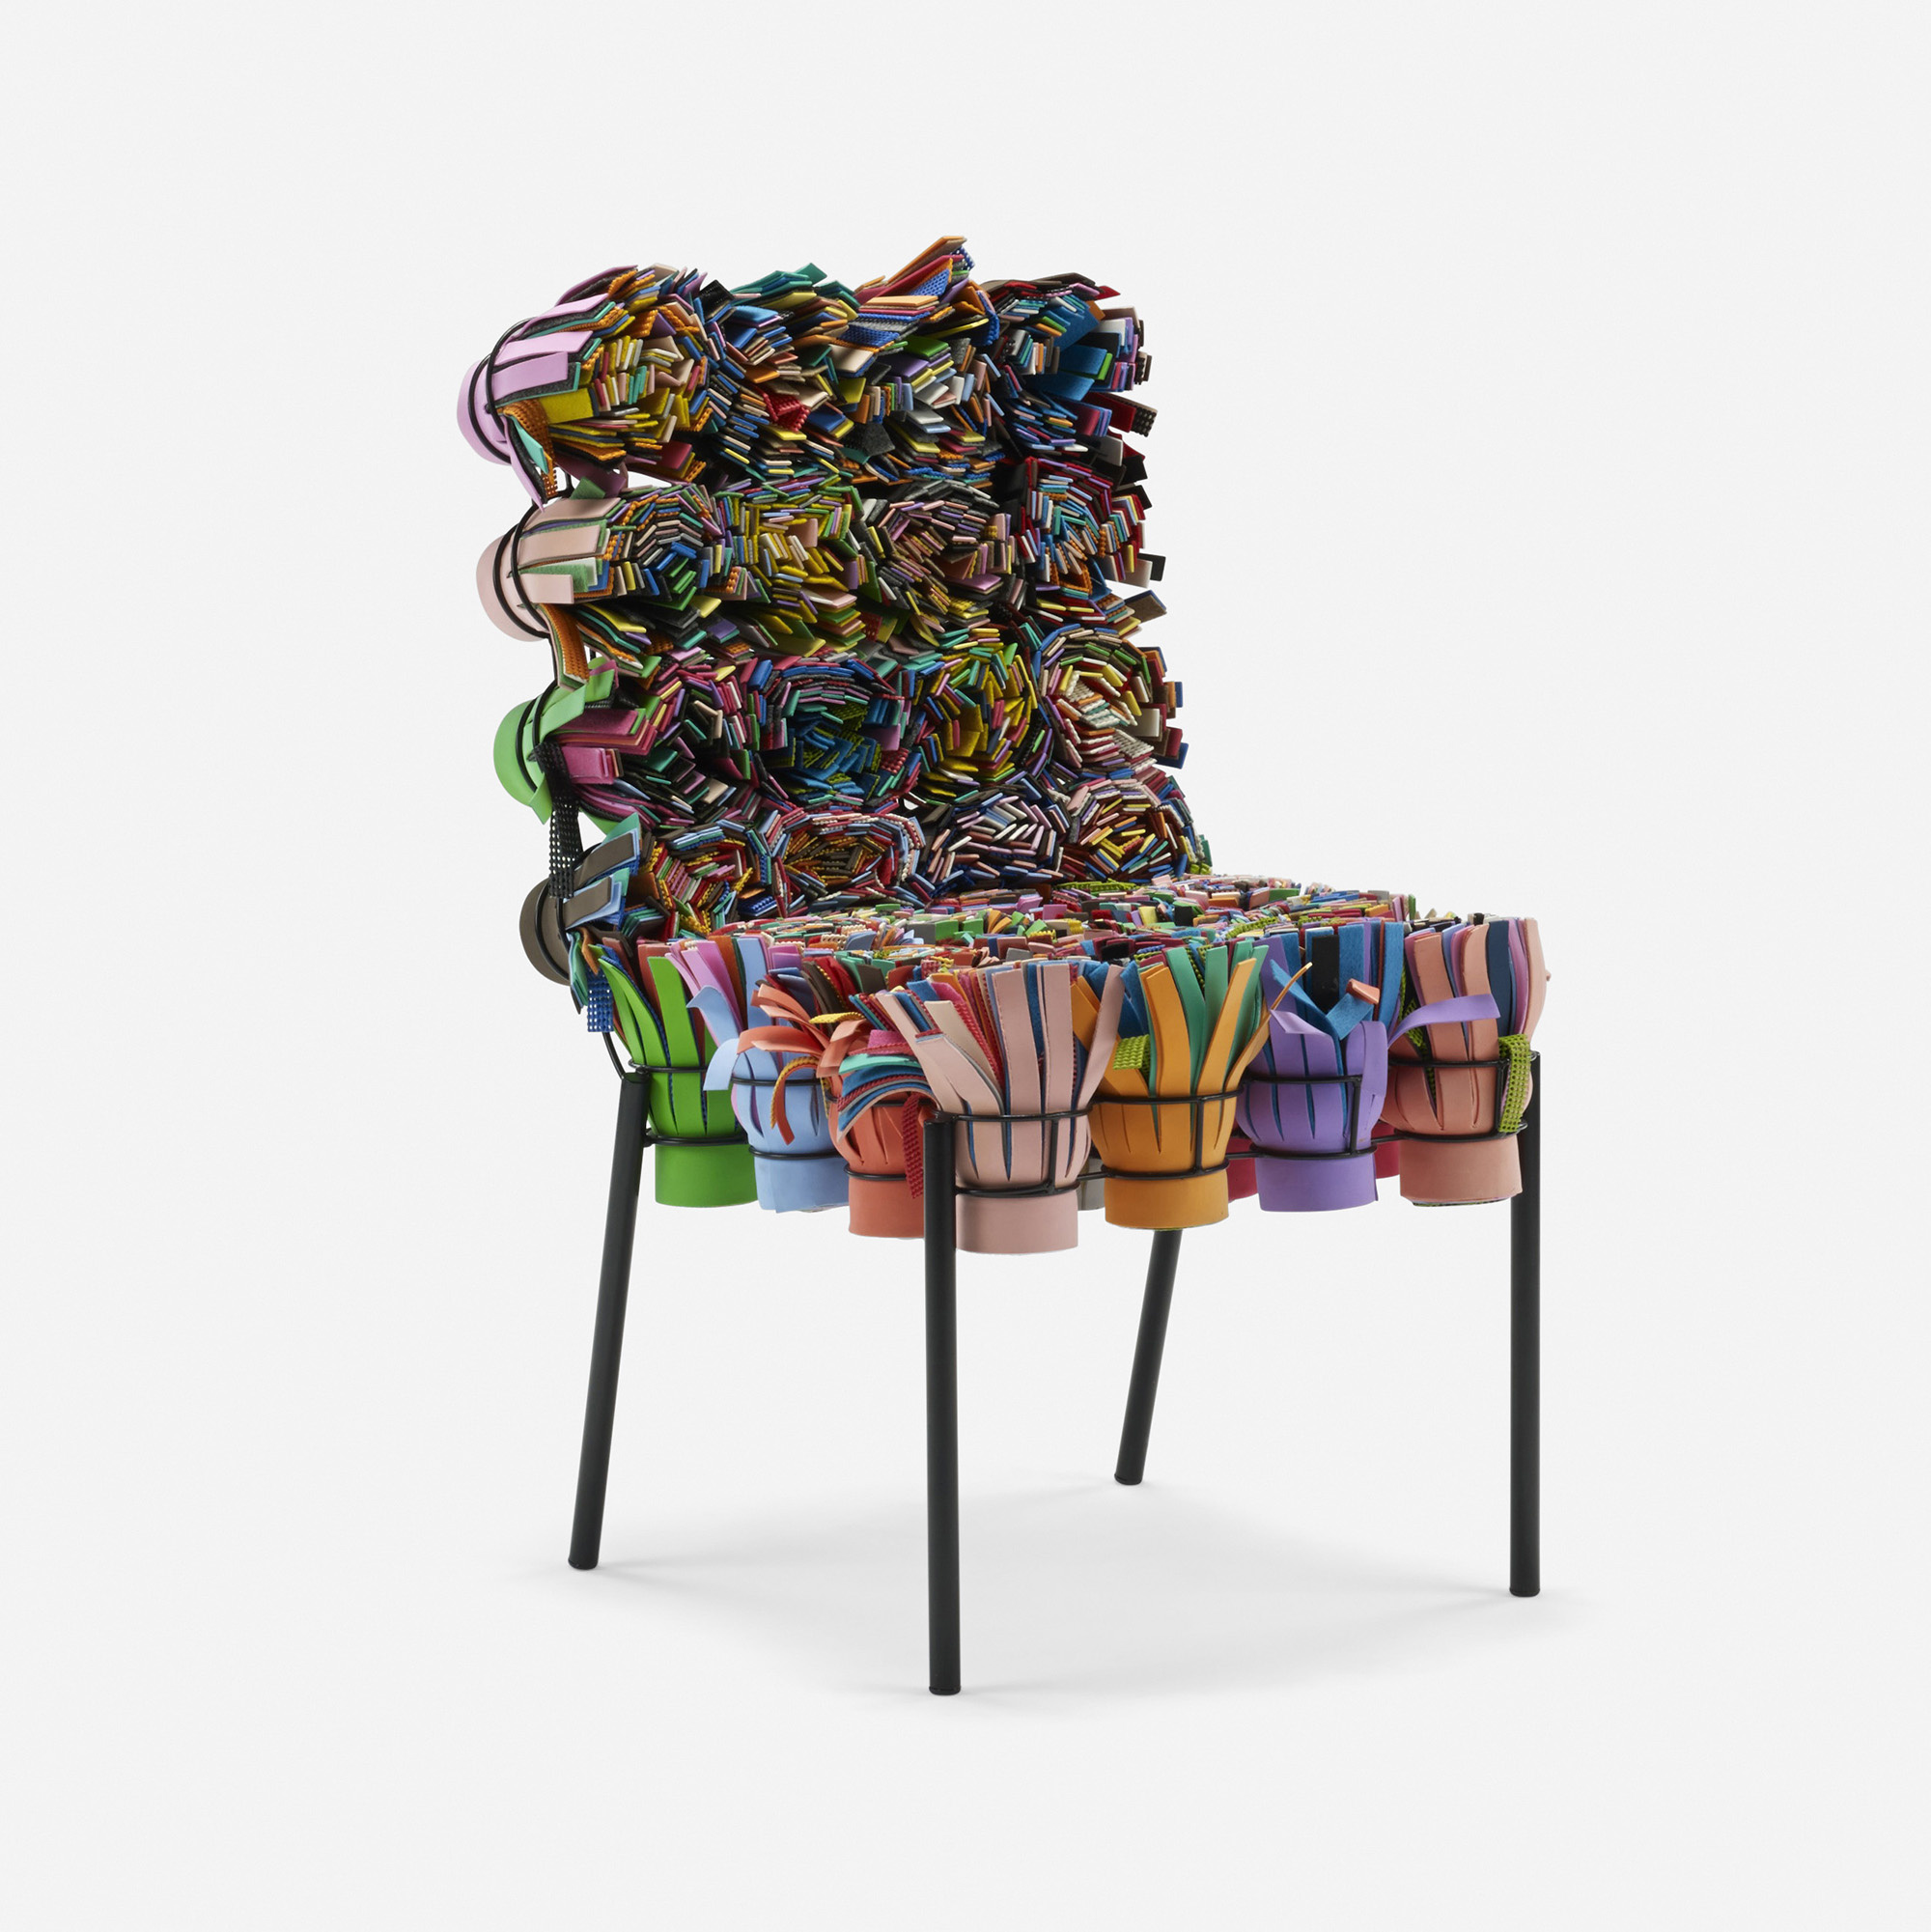 247 Fernando and Humberto Campana Sushi III chair Design 12